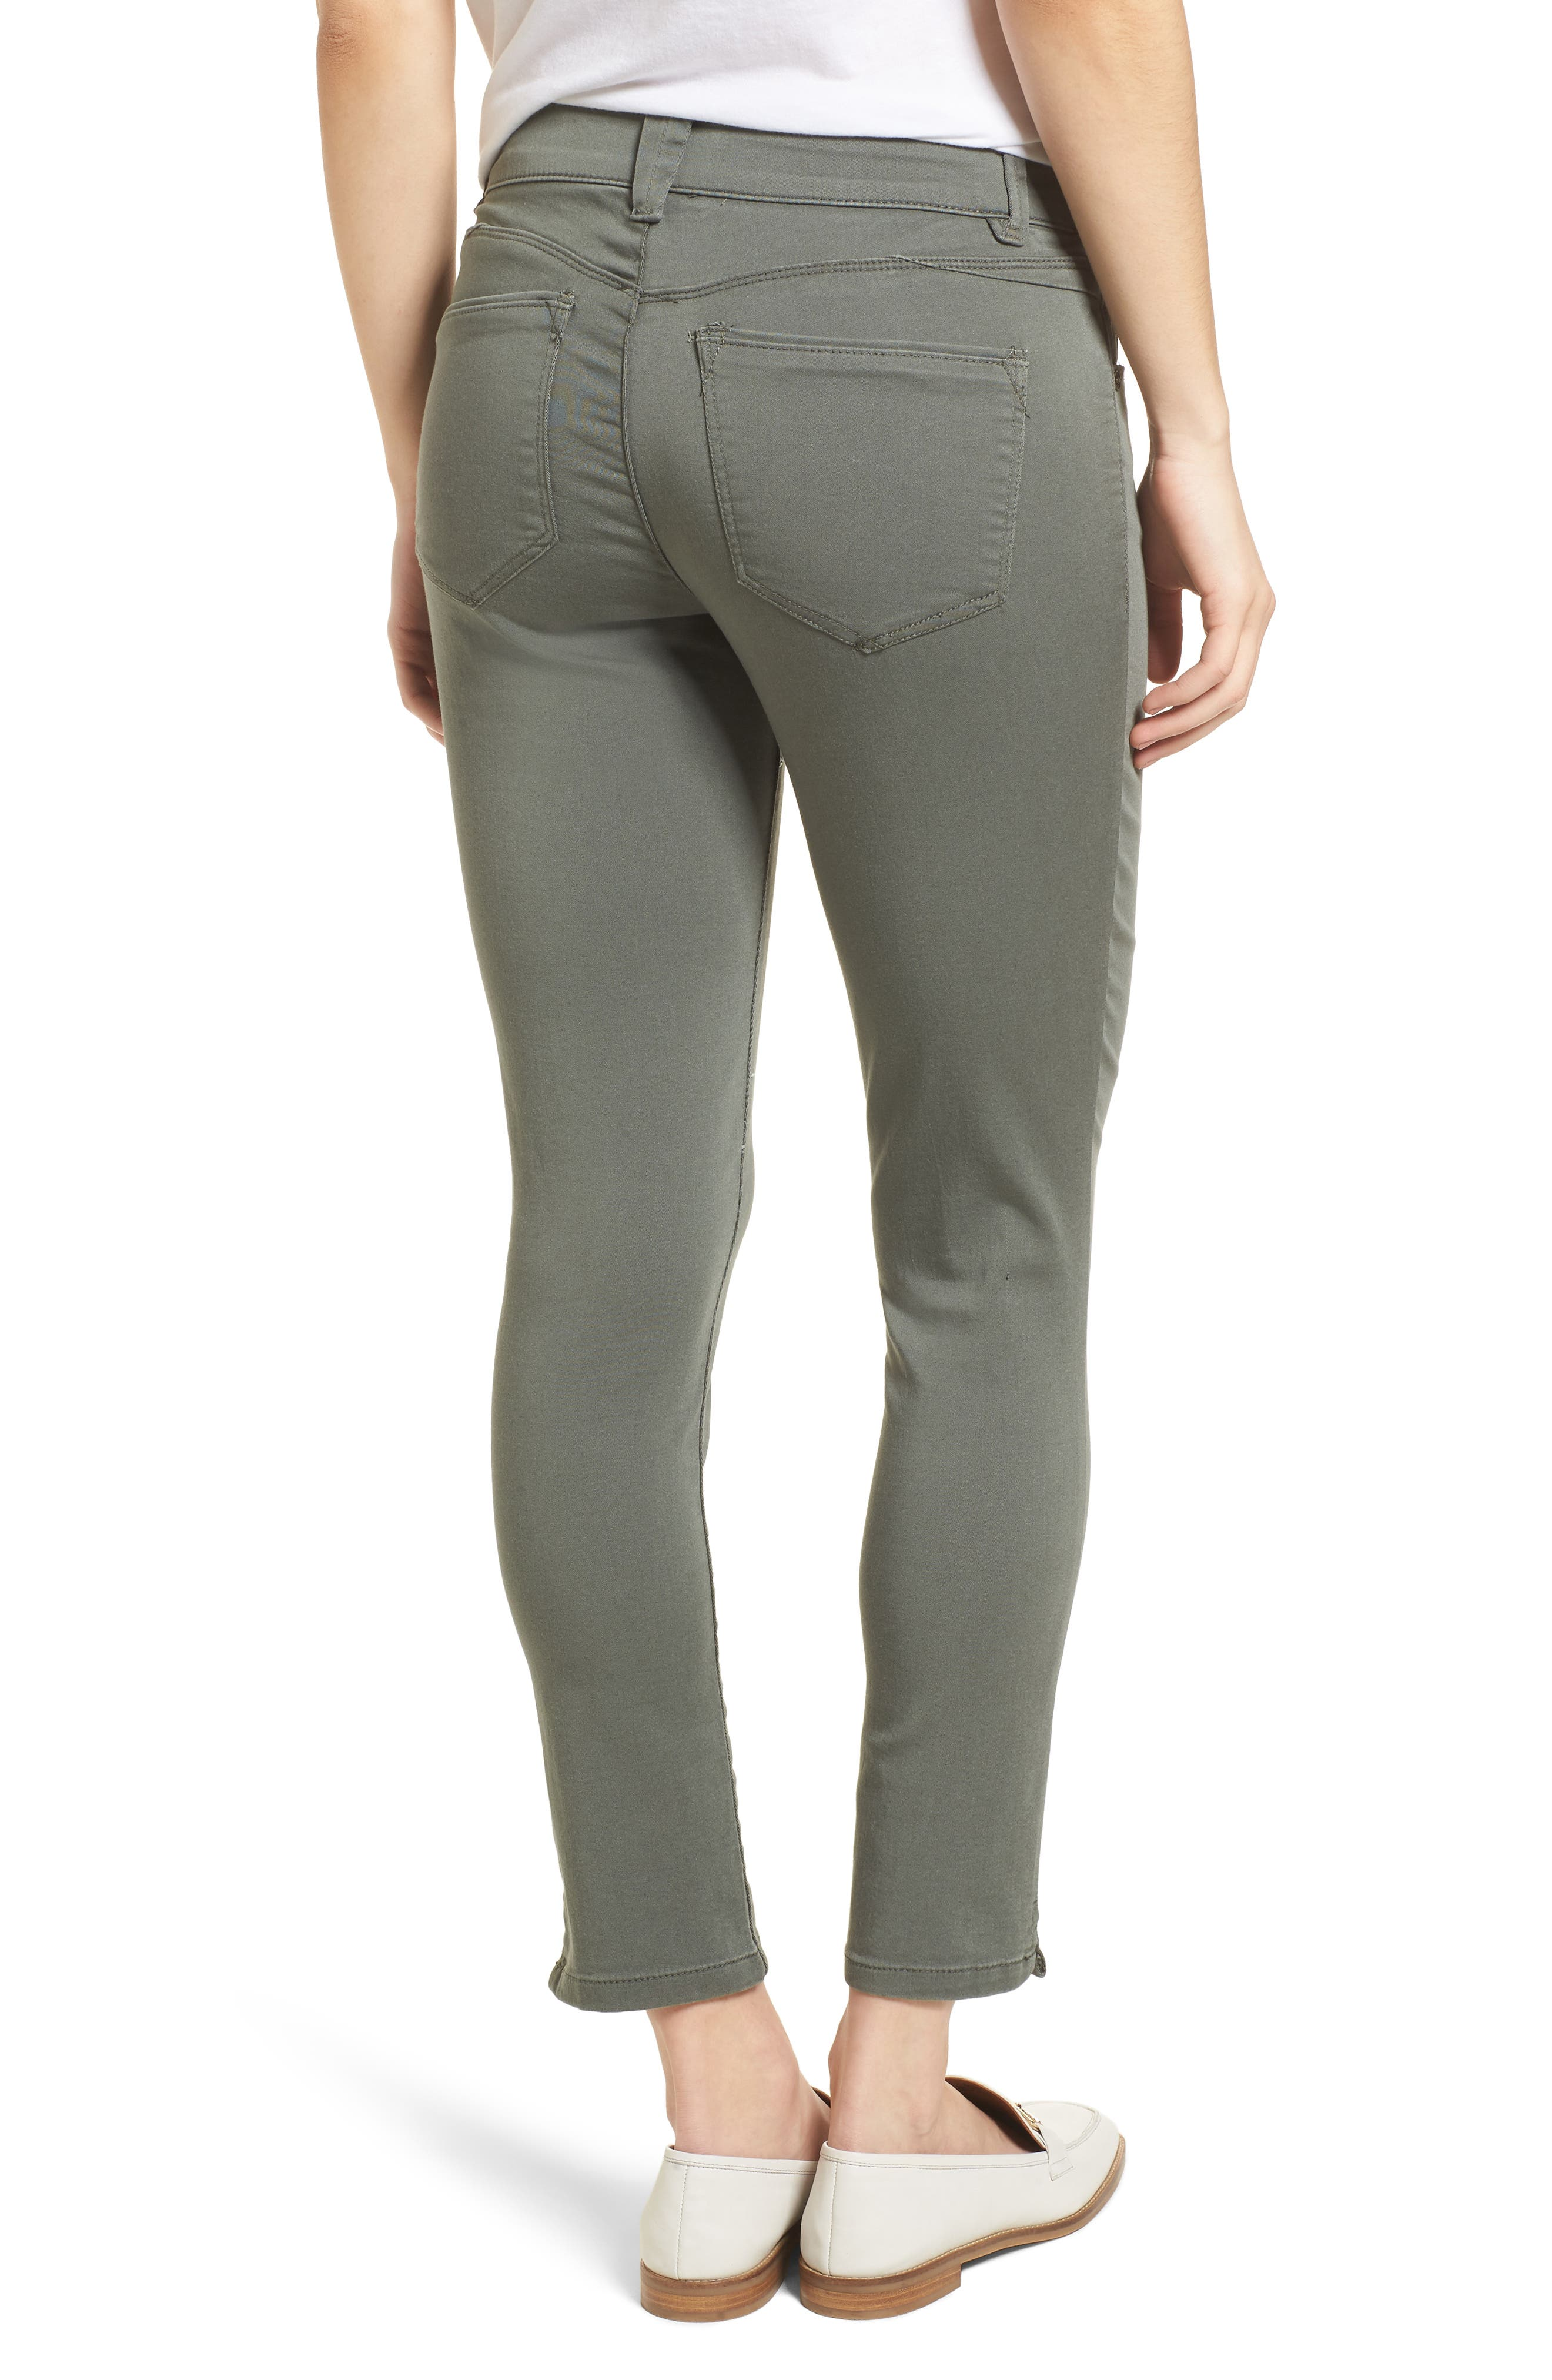 Ab-solution Ankle Skimmer Jeans,                             Alternate thumbnail 2, color,                             Thyme